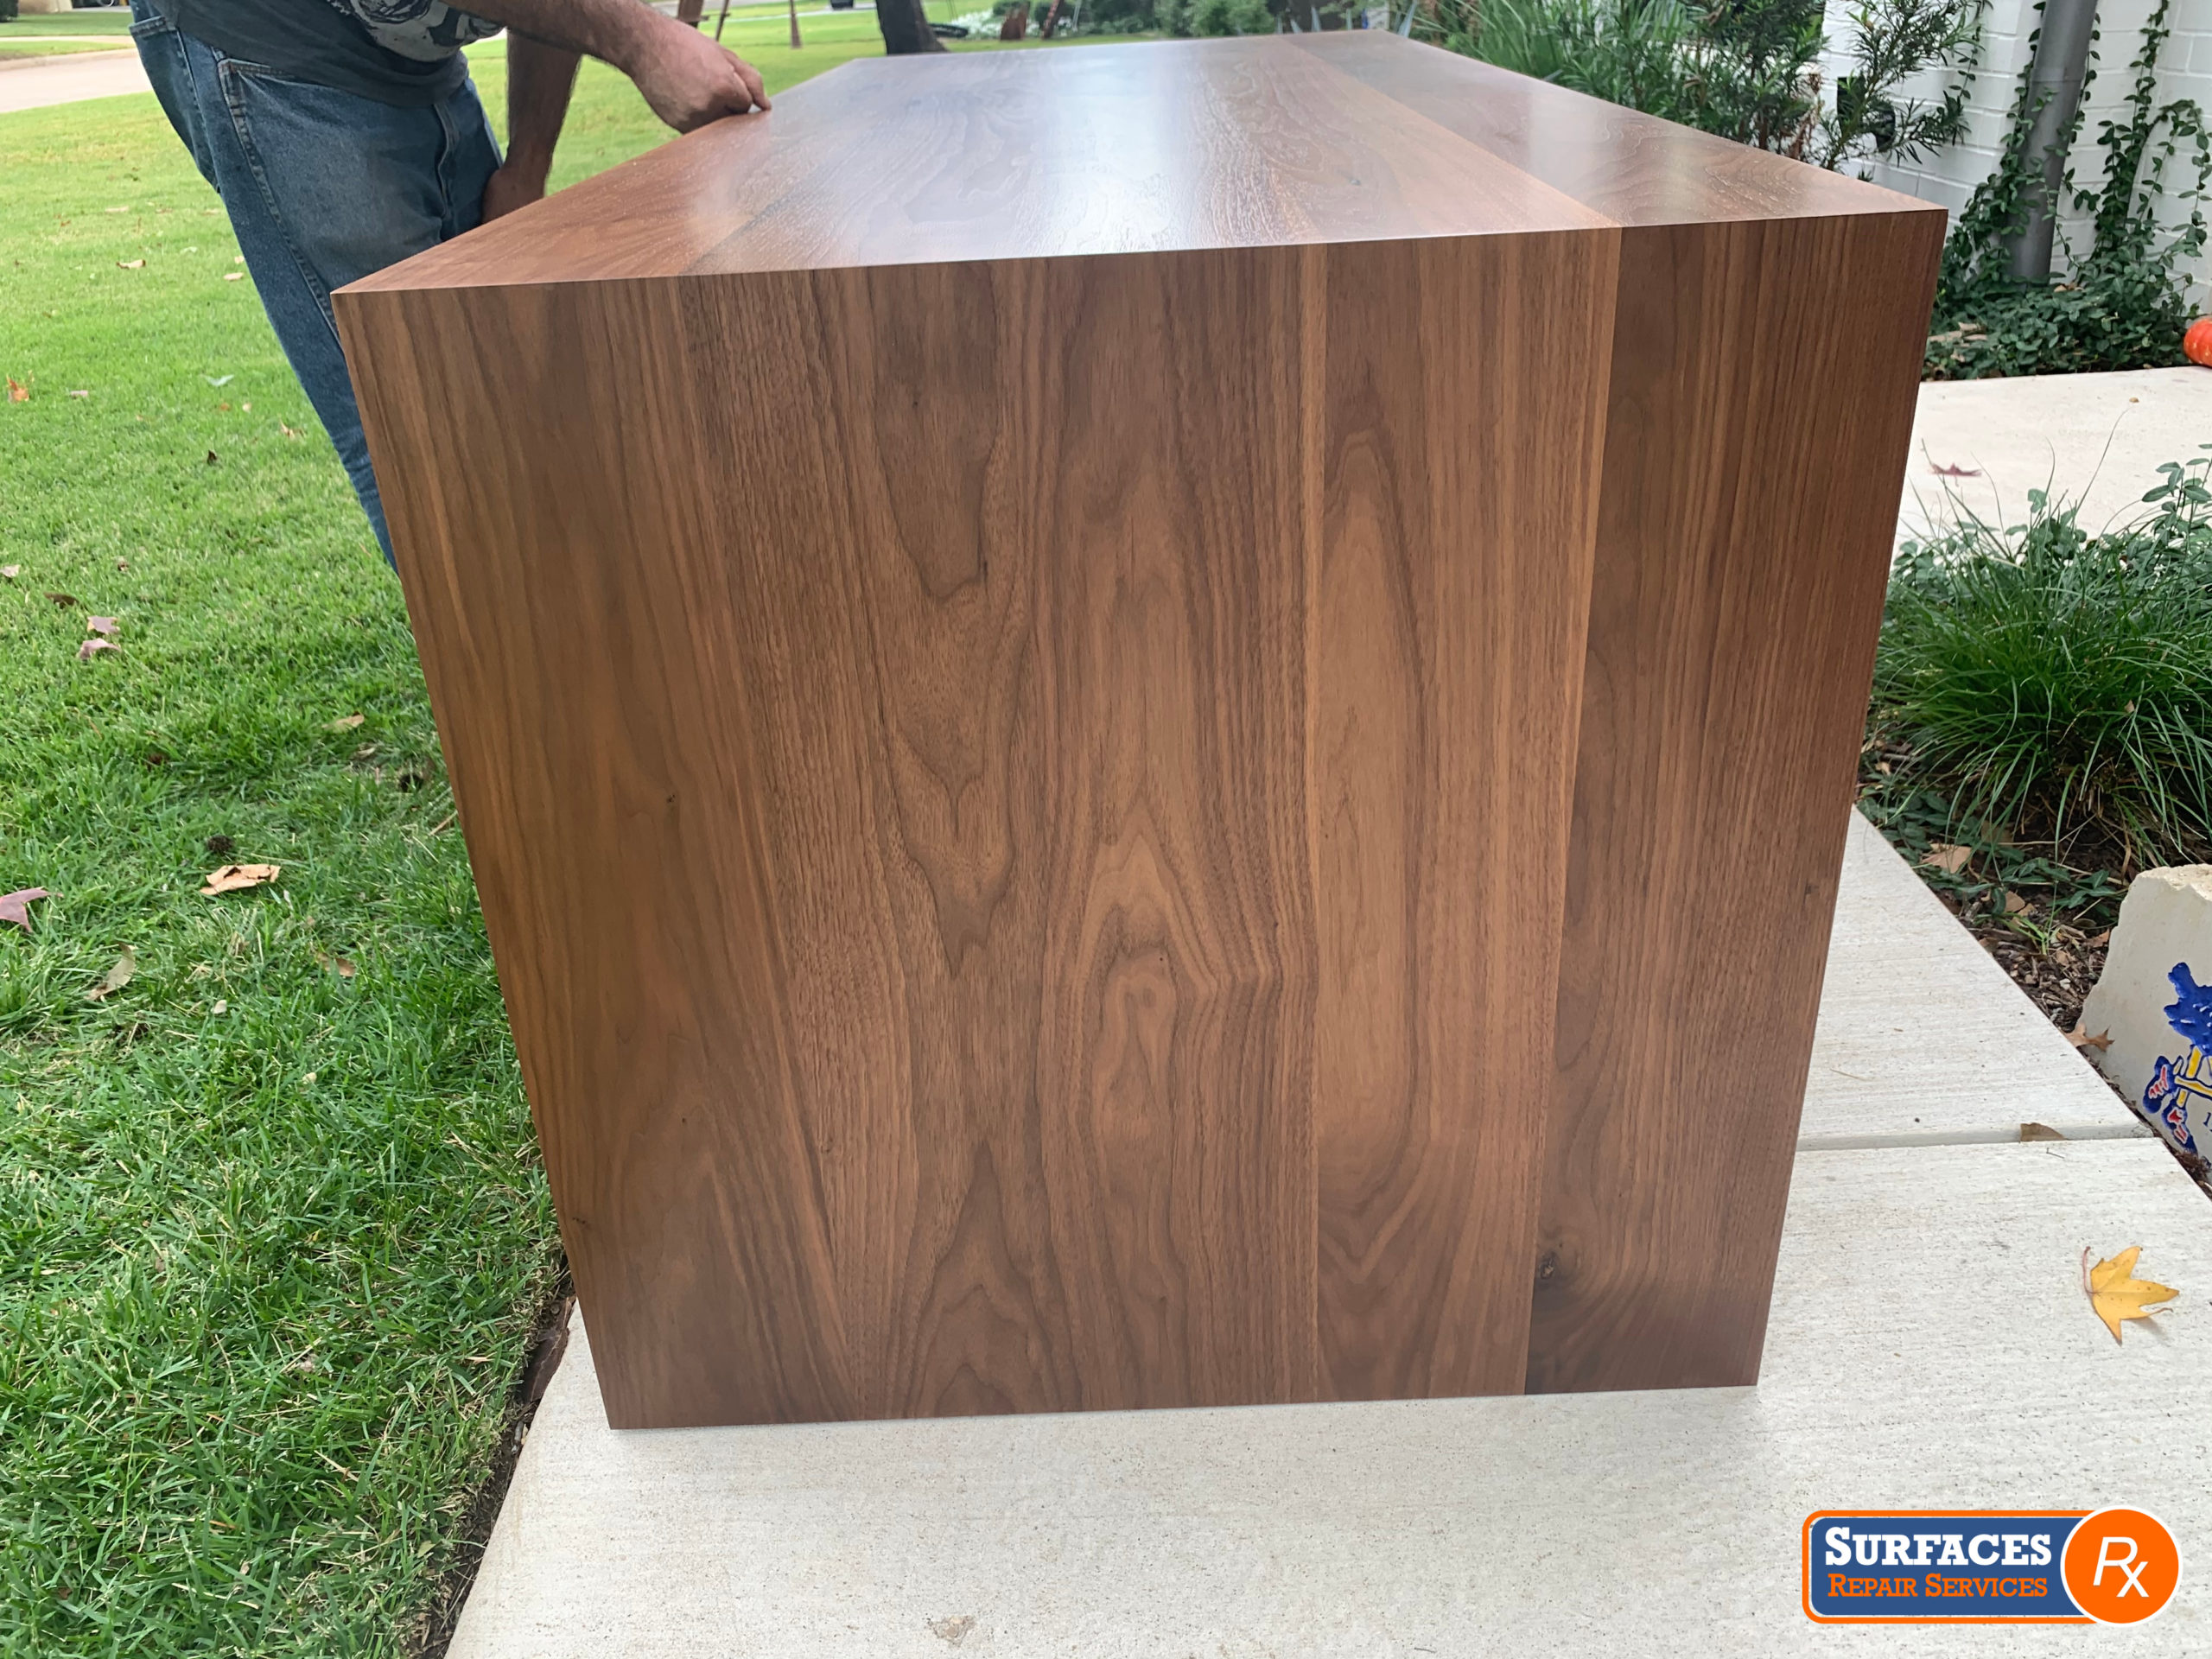 After Surfaces Rx Refinished New Walnut Desk in NE Dallas